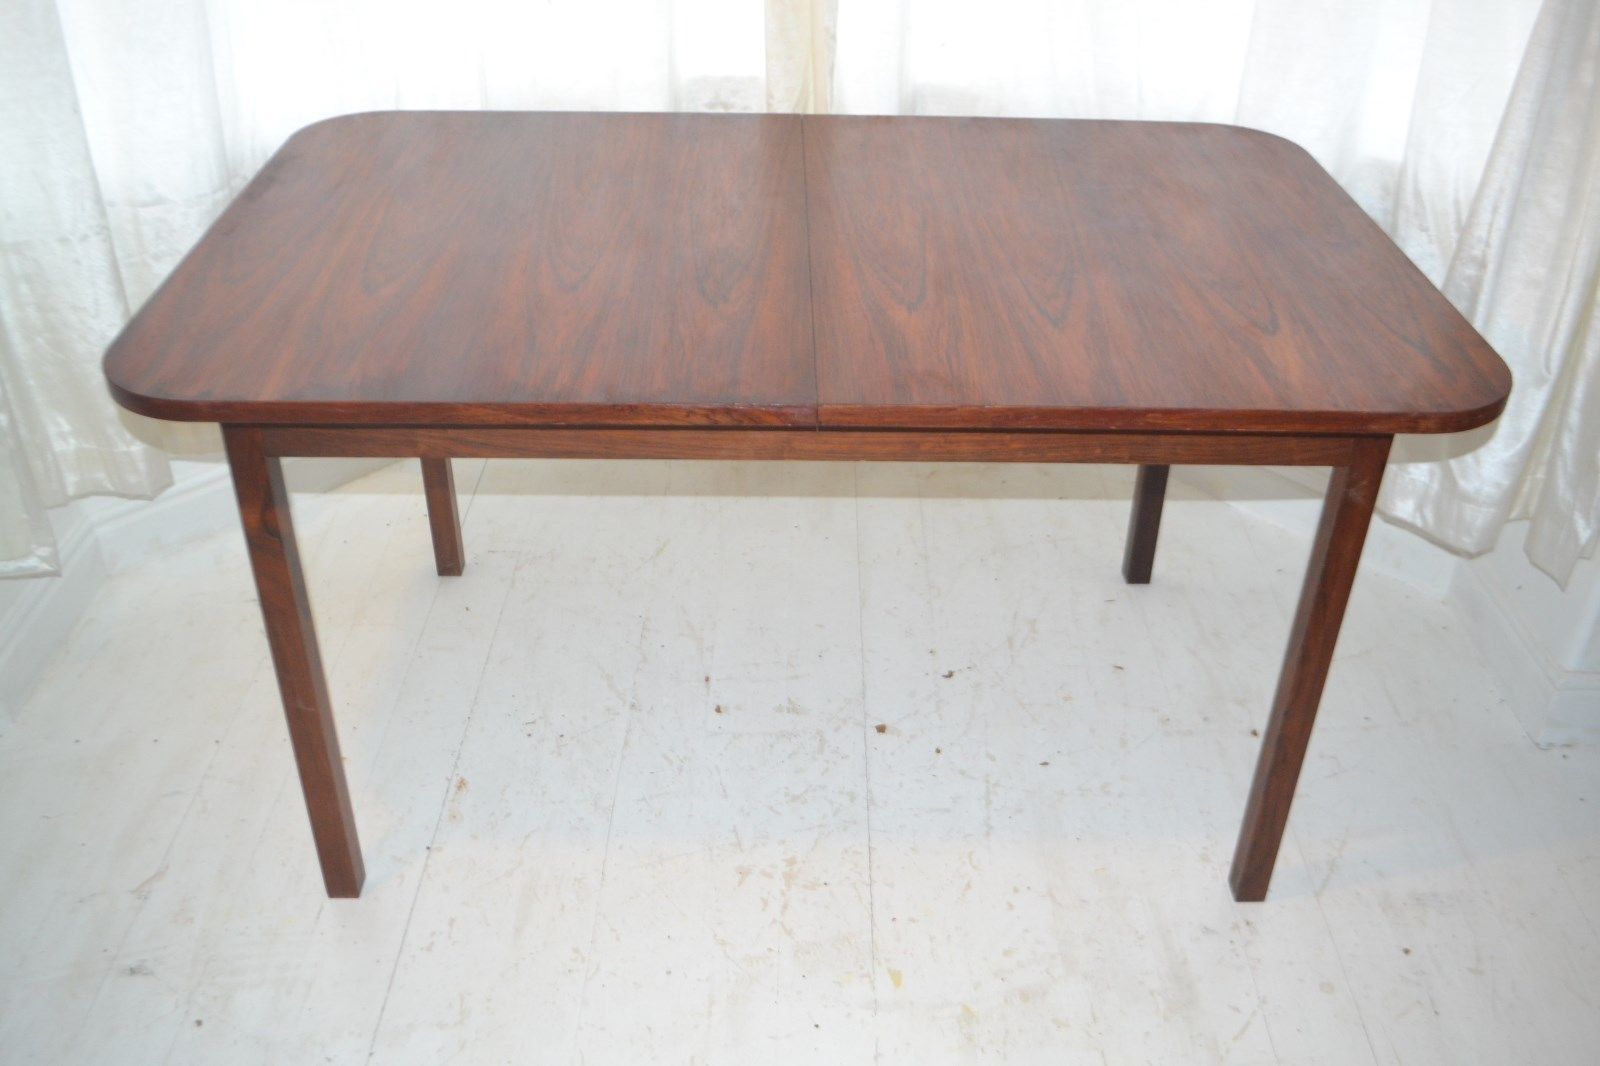 Stunning Vintage Rosewood Extending Dining Table Trends Dining